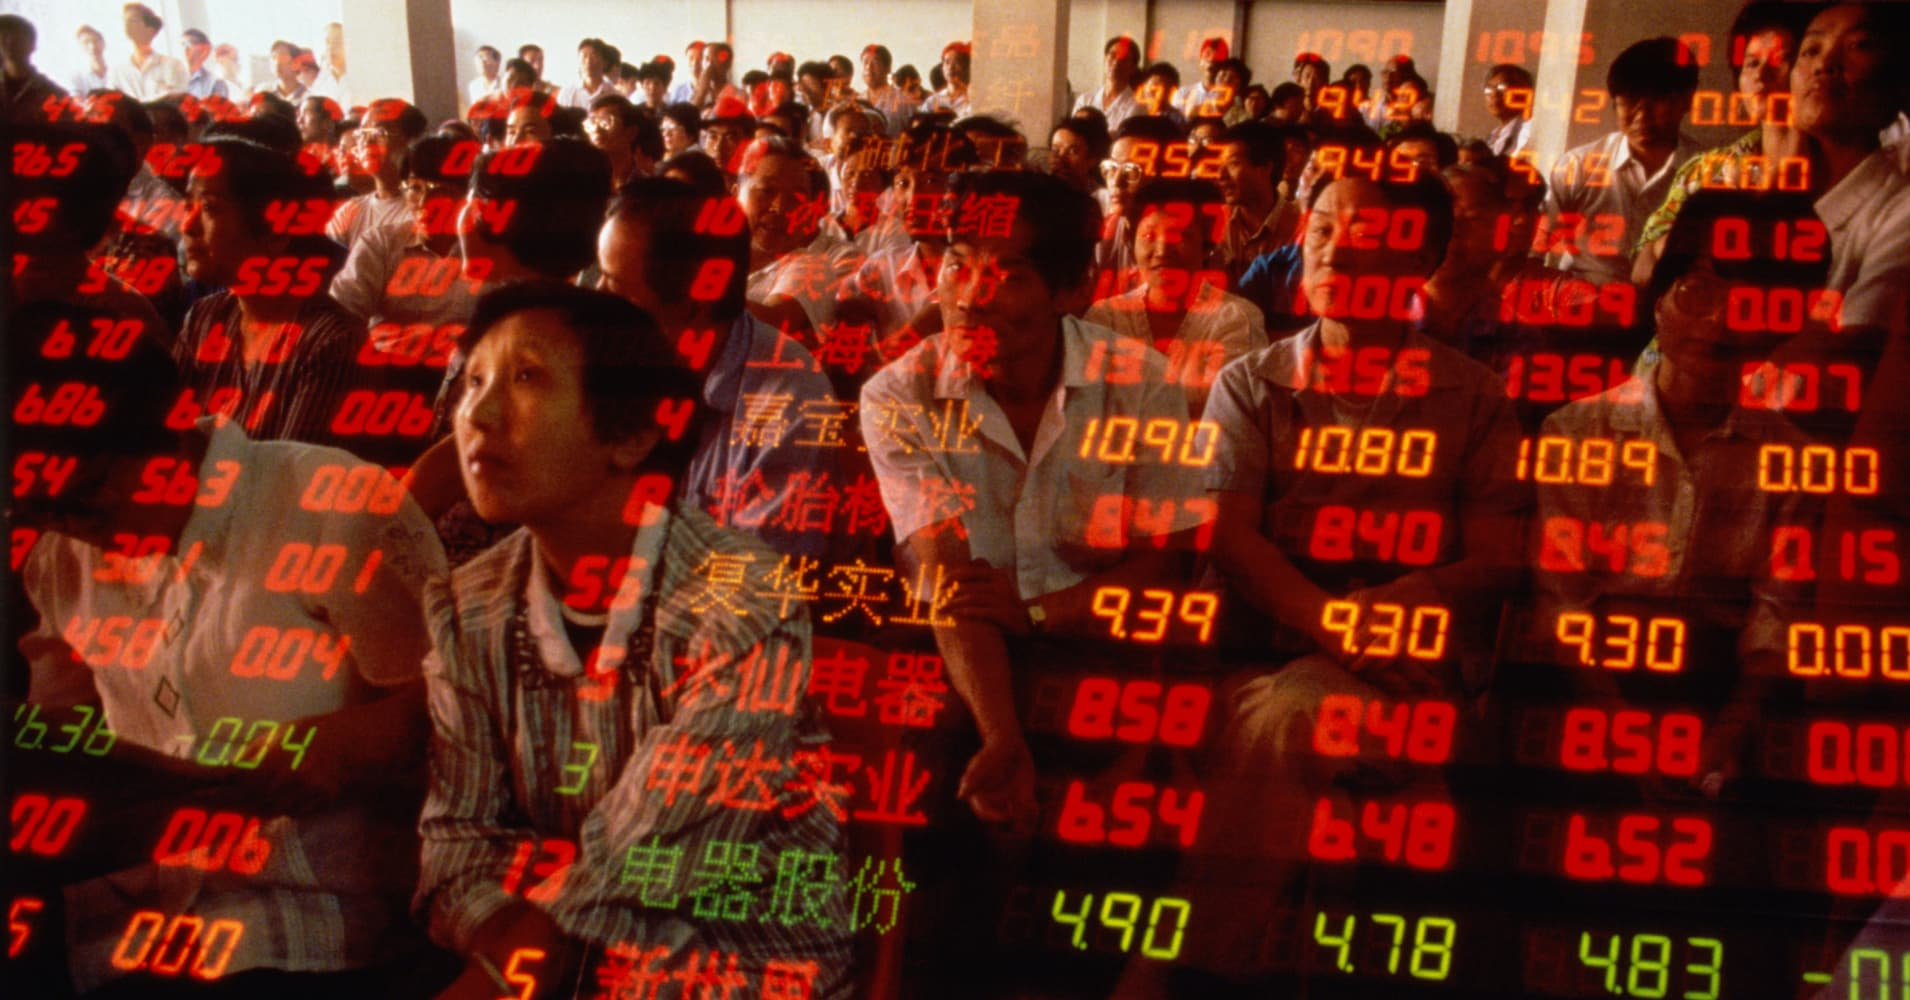 Mainland Chinese stocks are gaining influence on global indexes. That may drive money into China